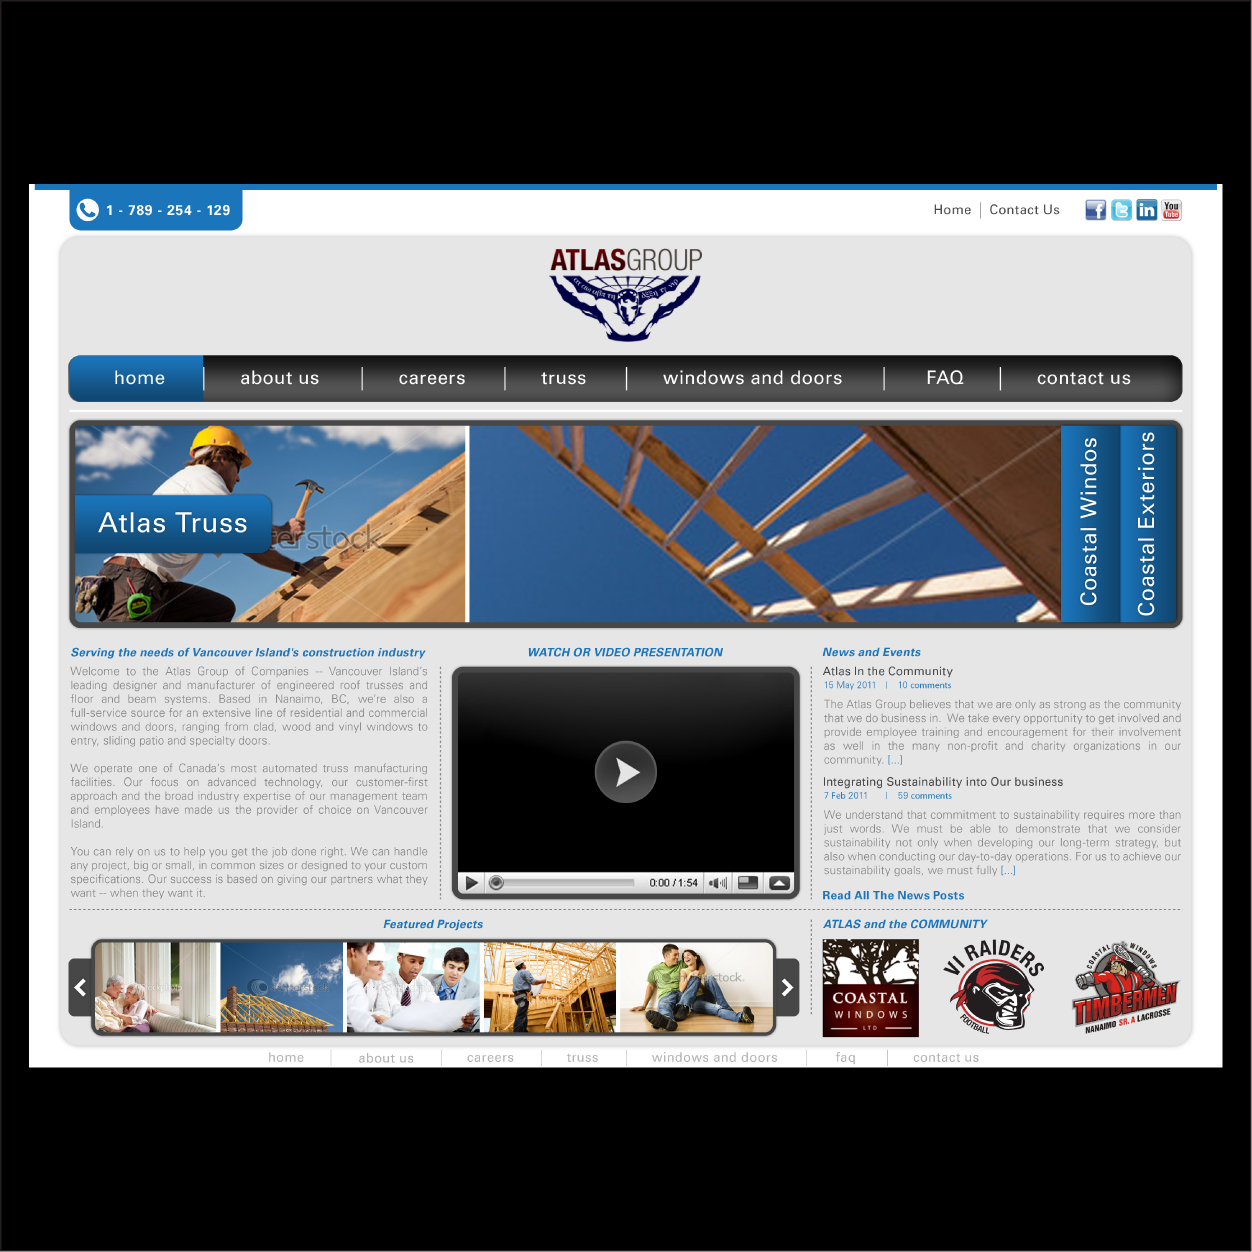 Web Page Design by Alpar David - Entry No. 39 in the Web Page Design Contest The Atlas Group Website.